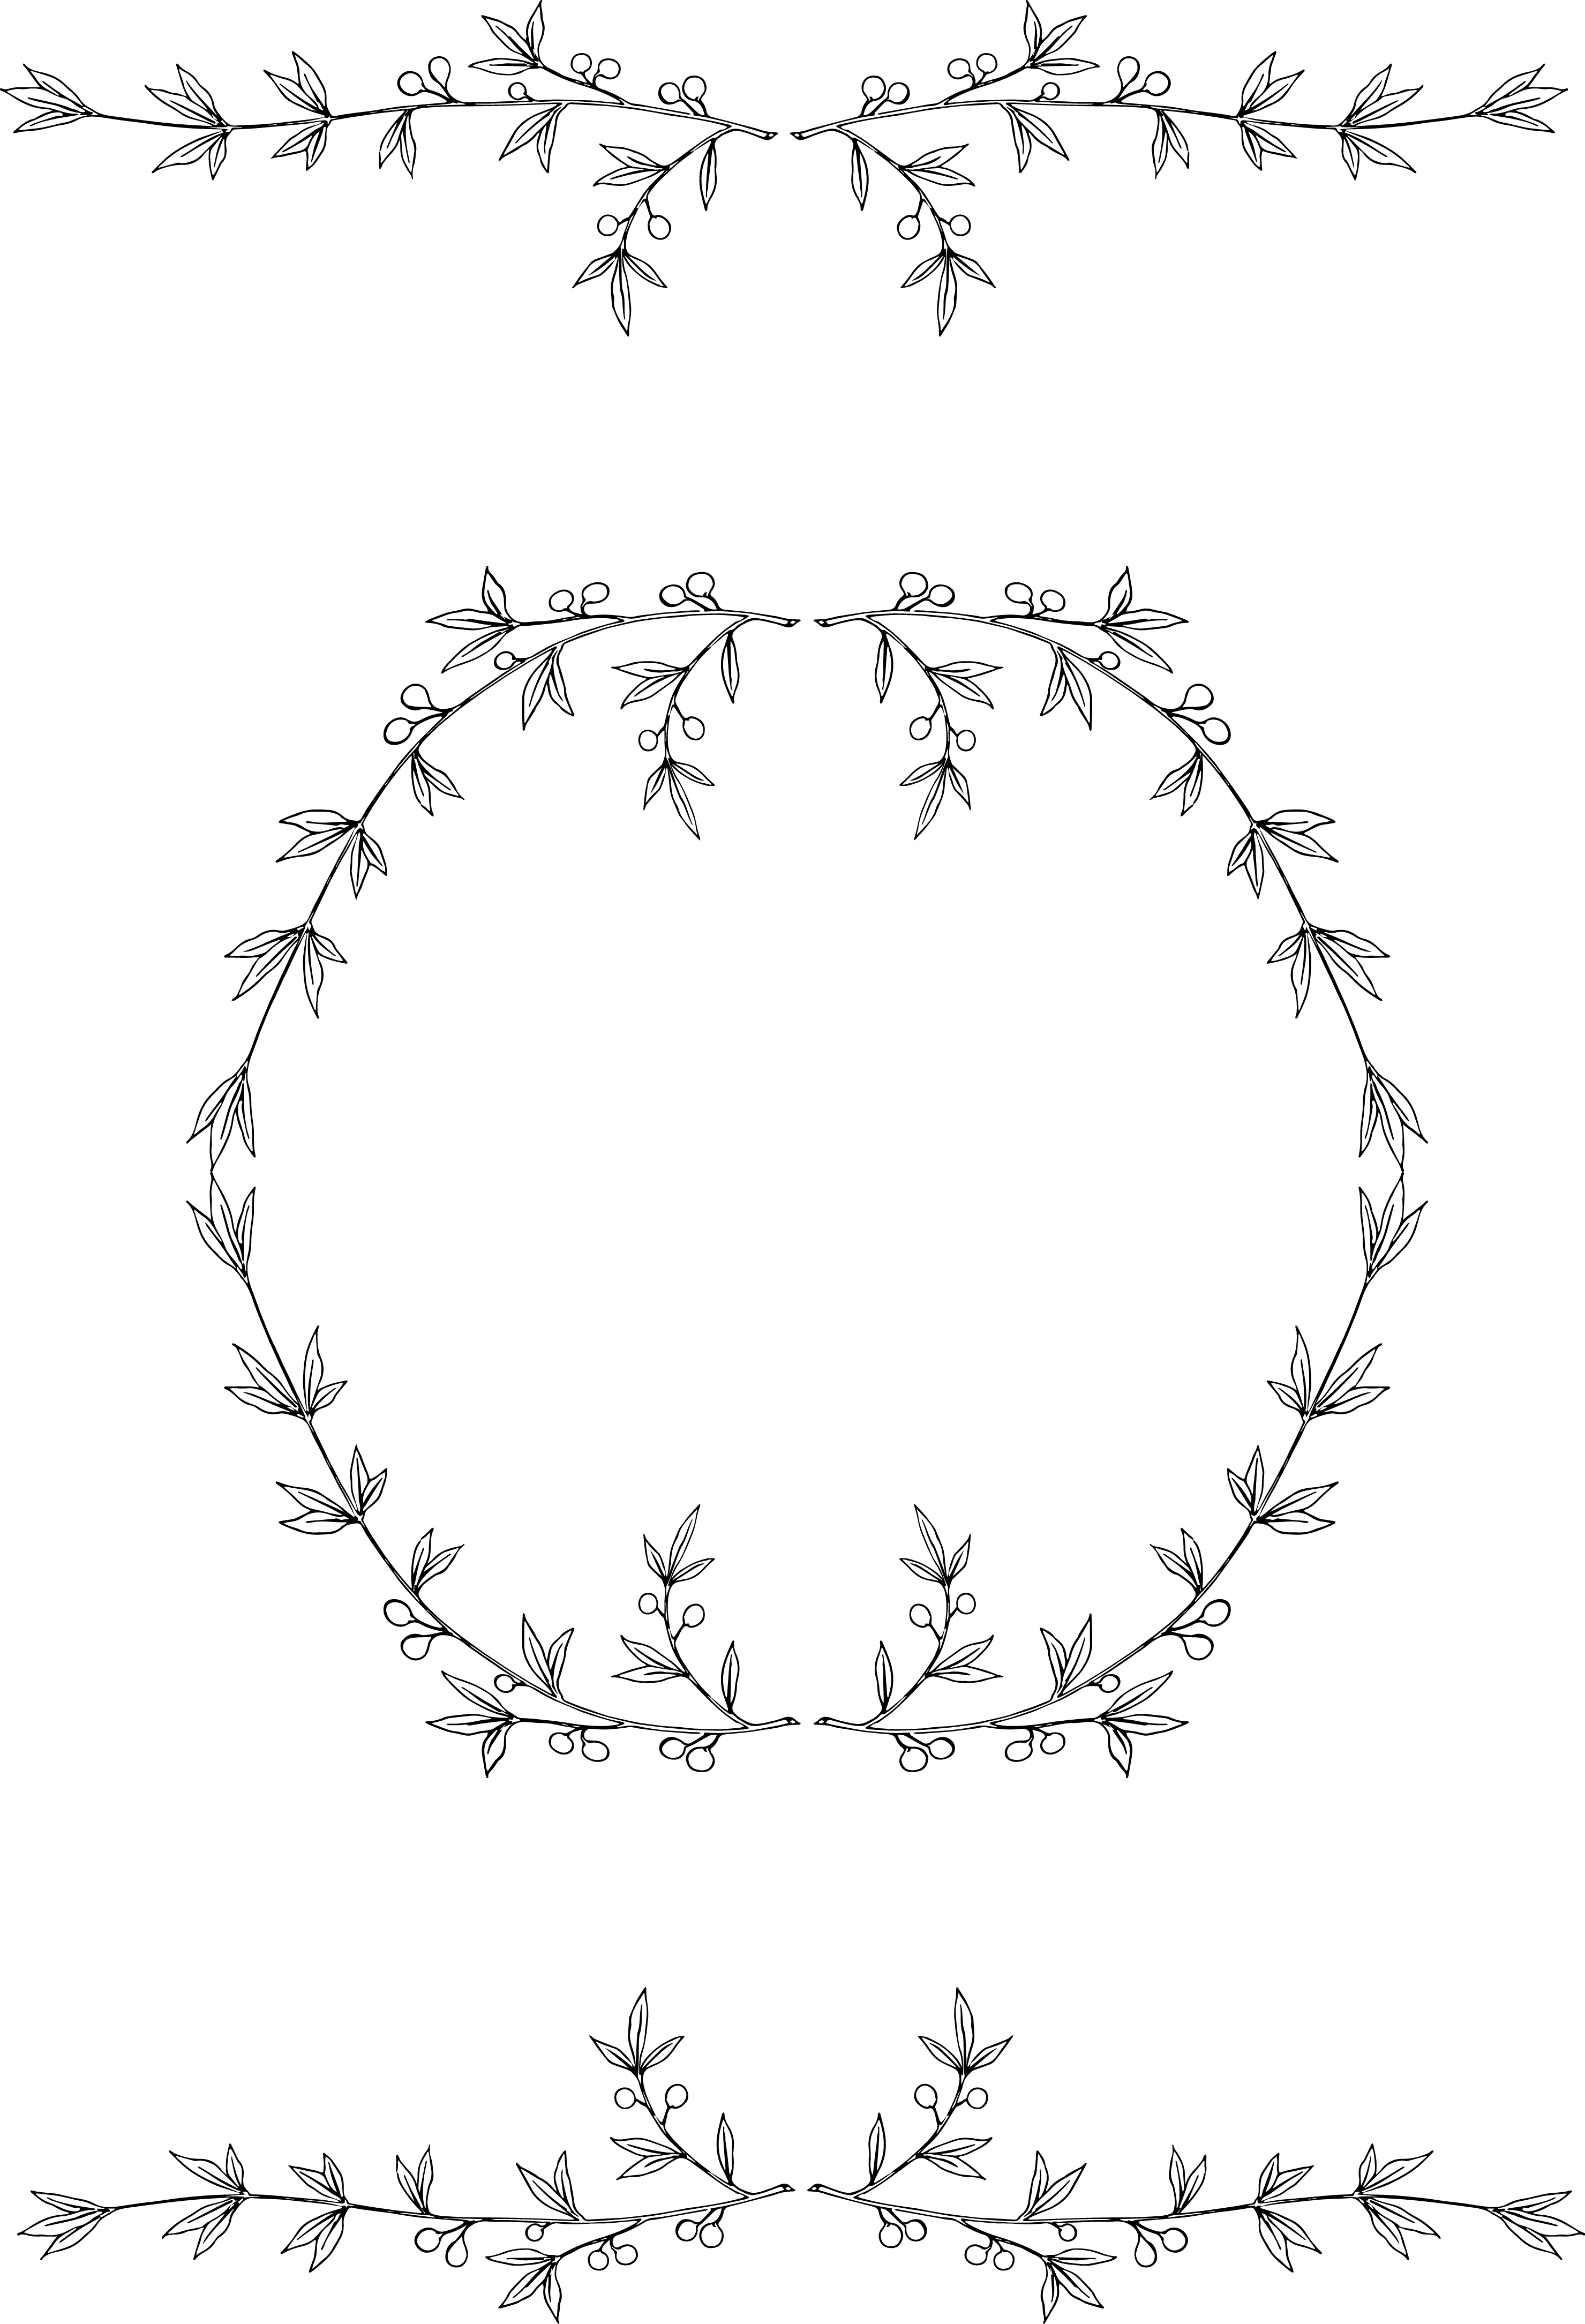 Wreath branches free clipart graphic royalty free download Free Wreath Cliparts, Download Free Clip Art, Free Clip Art ... graphic royalty free download